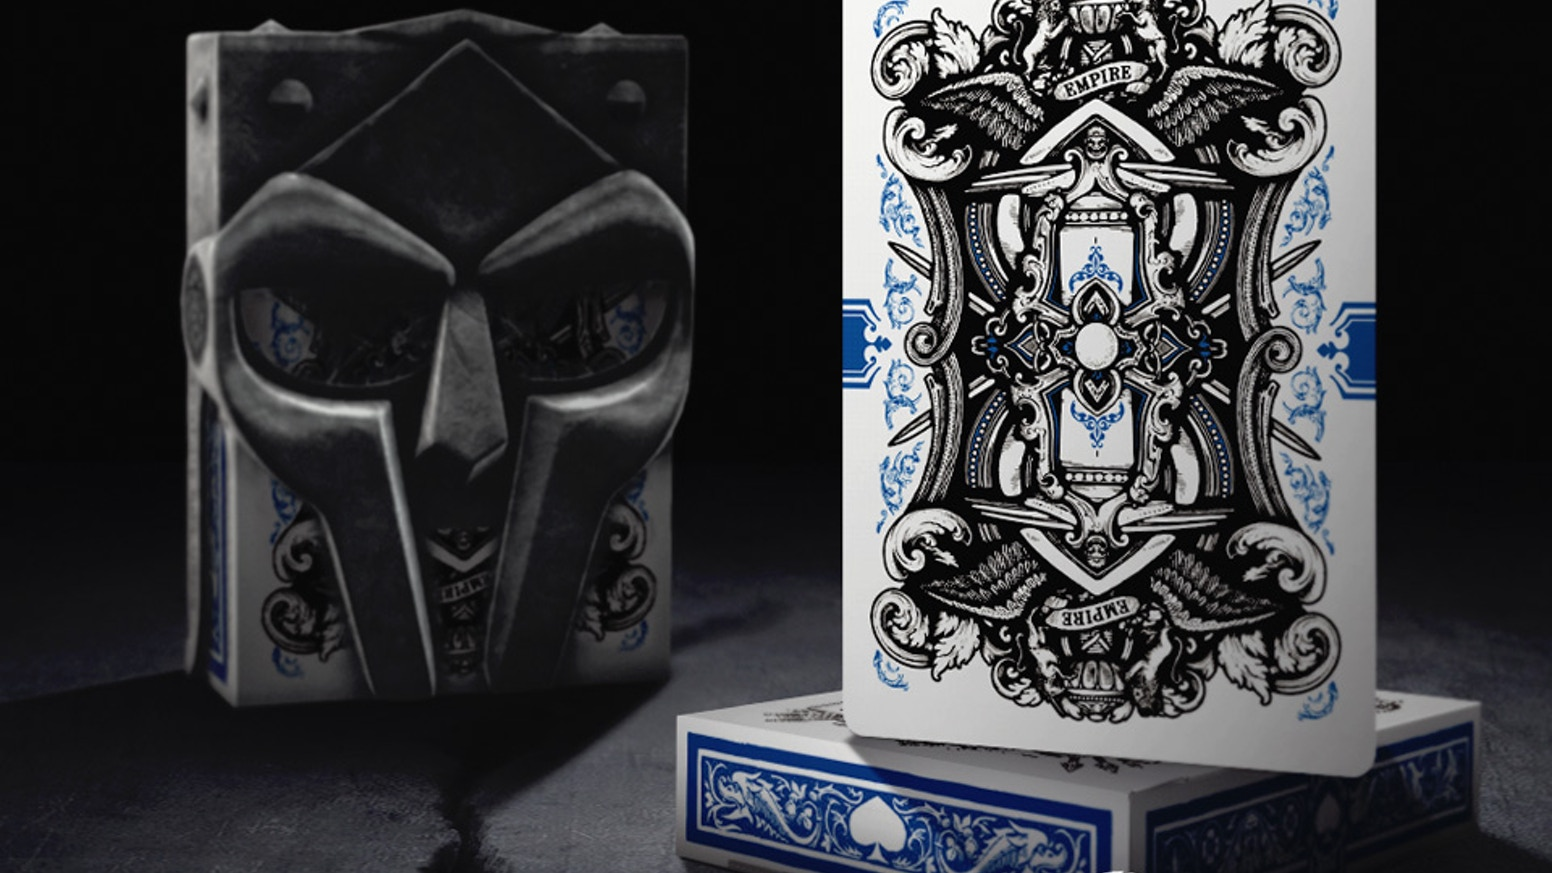 Visit Kings & Crooks for a bolder breed of playing cards.